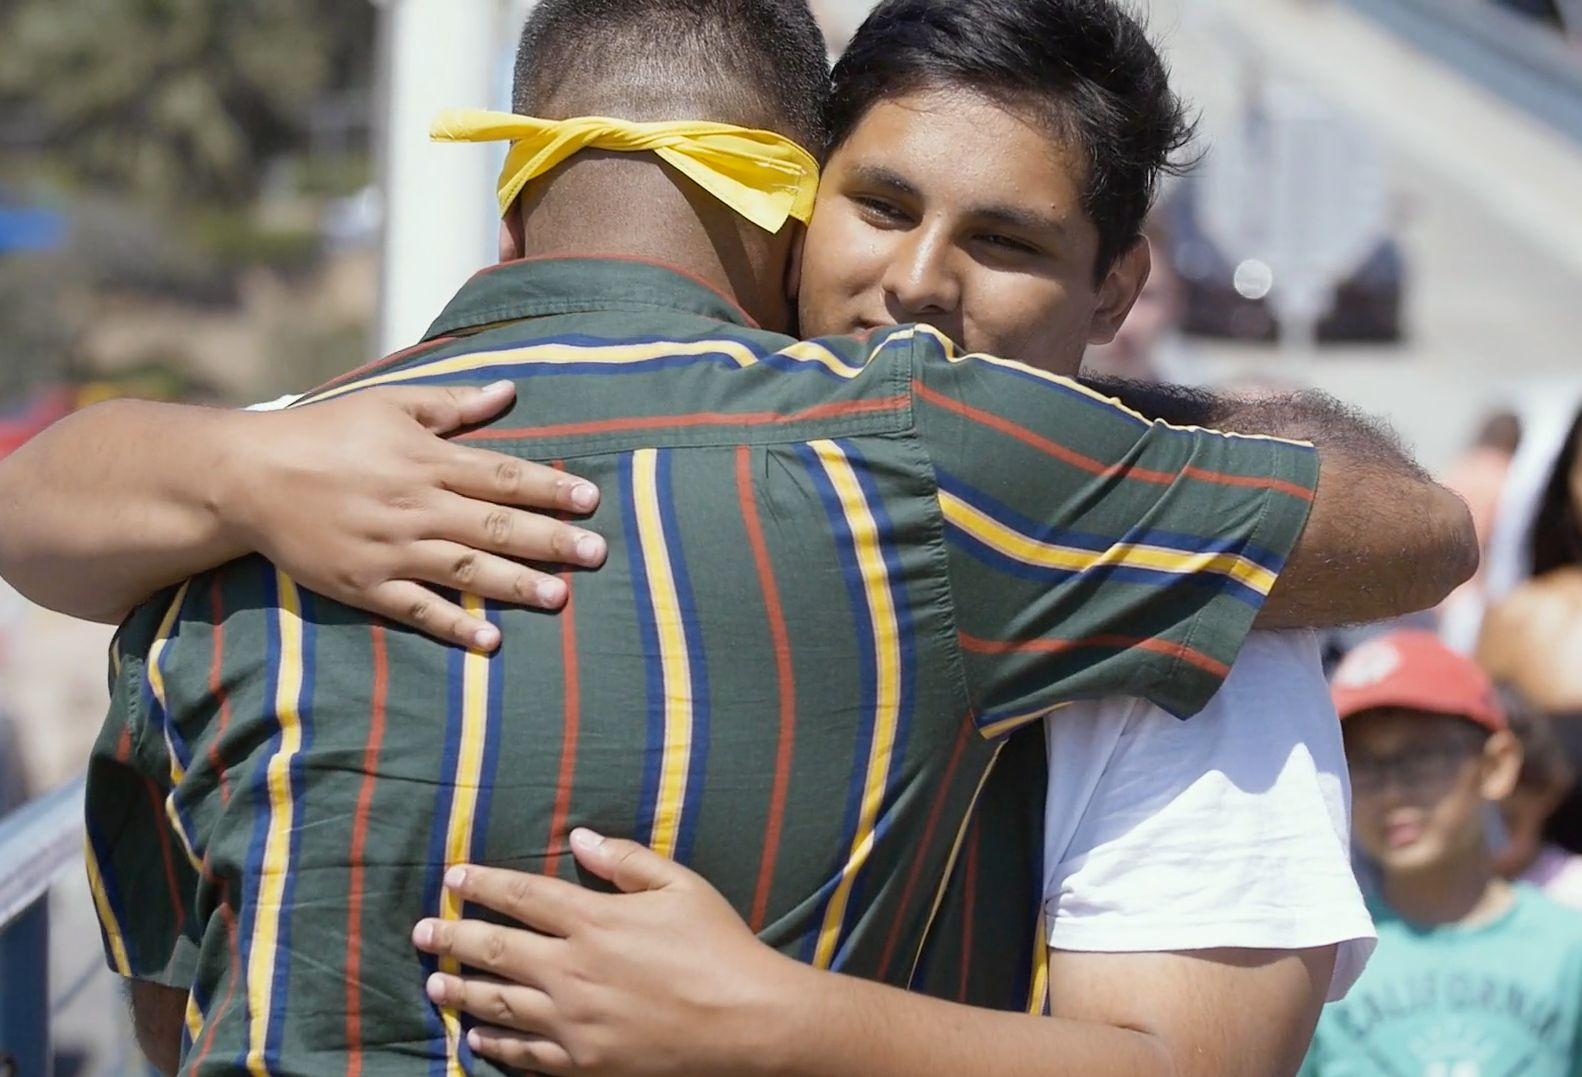 Powerful Video Shows Man Offering Hugs To Strangers Affected By